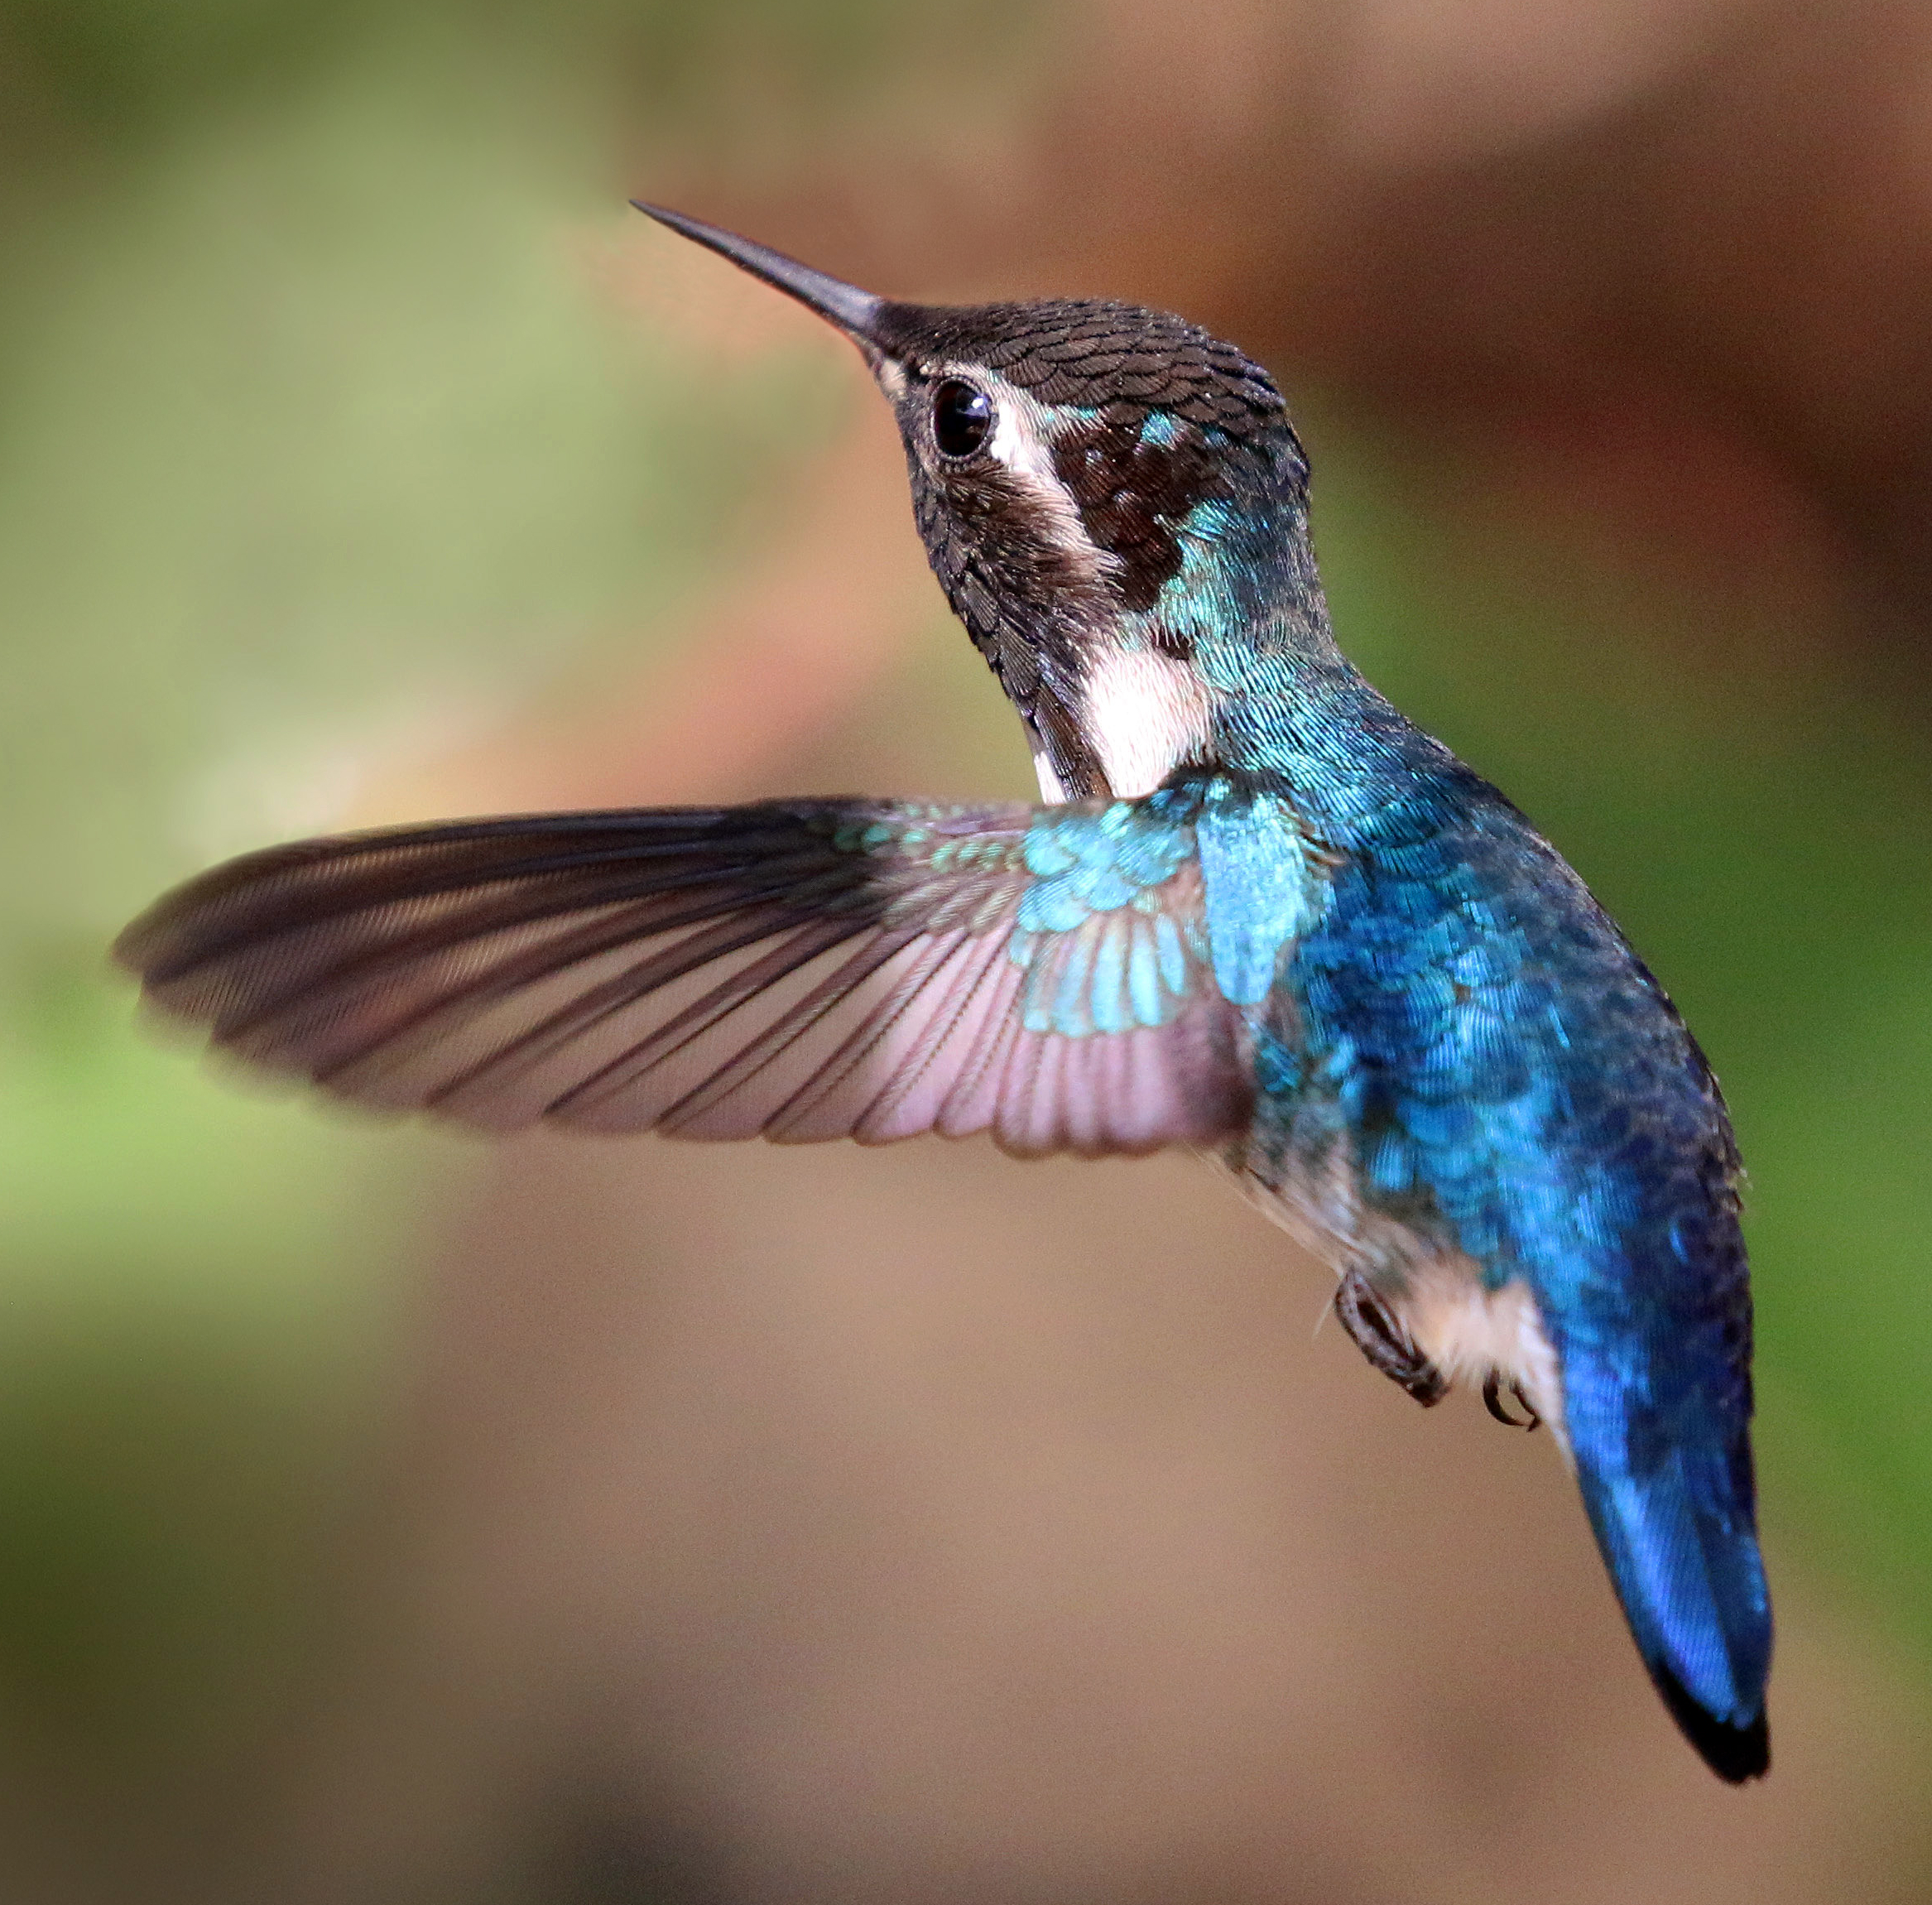 087e48b120 Male bee hummingbird in flight; the bird with the smallest wingspan at 6.6  cm (2.6 in).